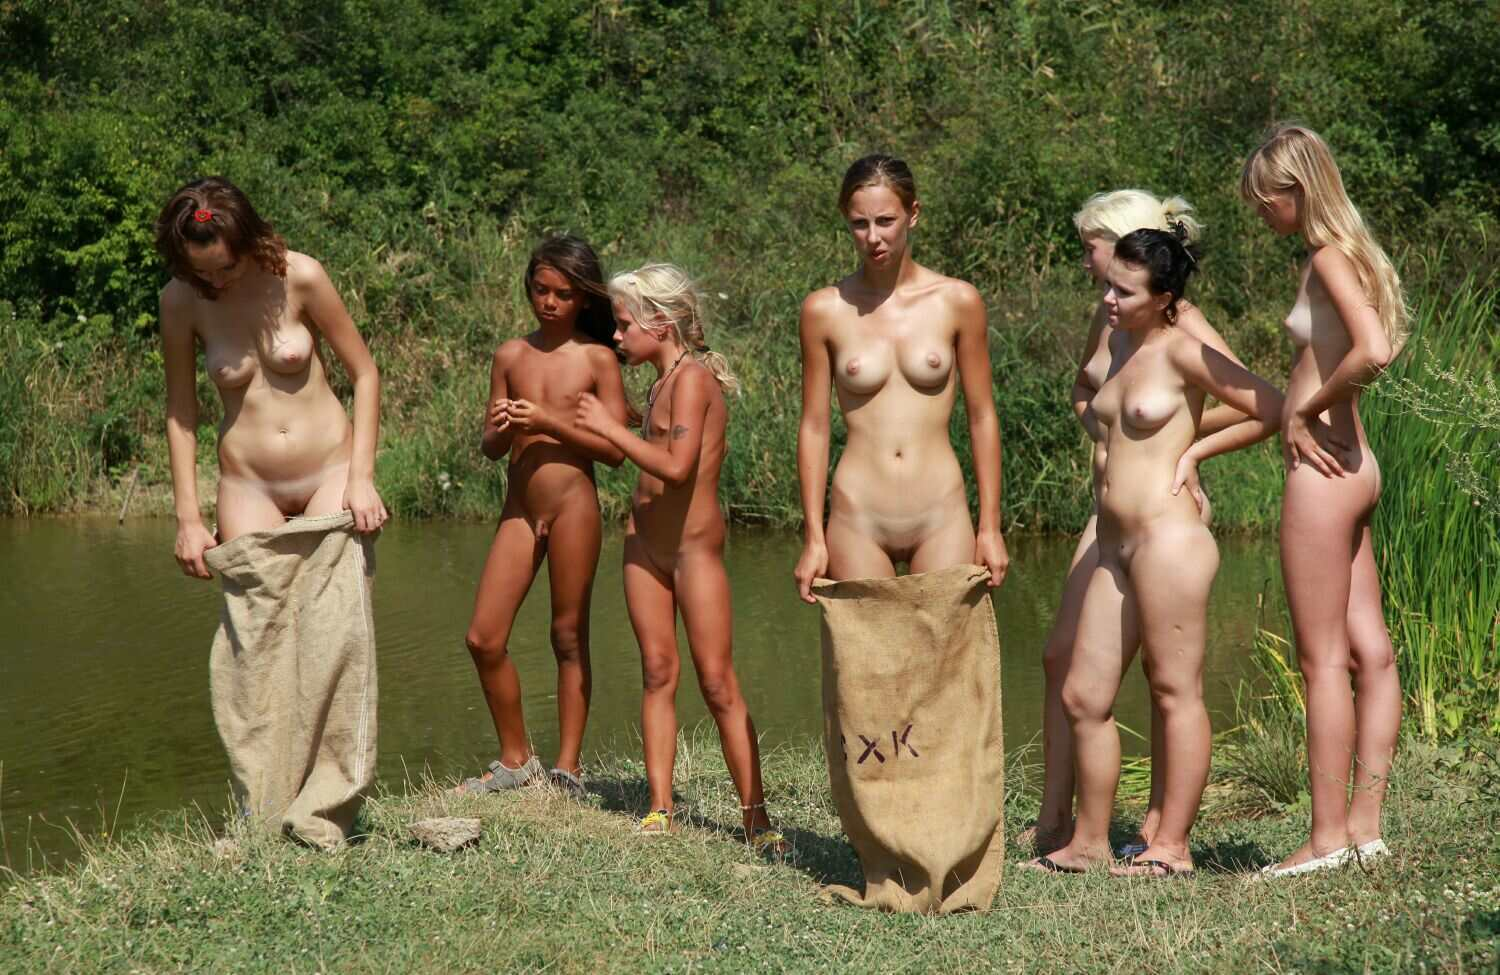 purenudism 2016 nudist family events photos competition games